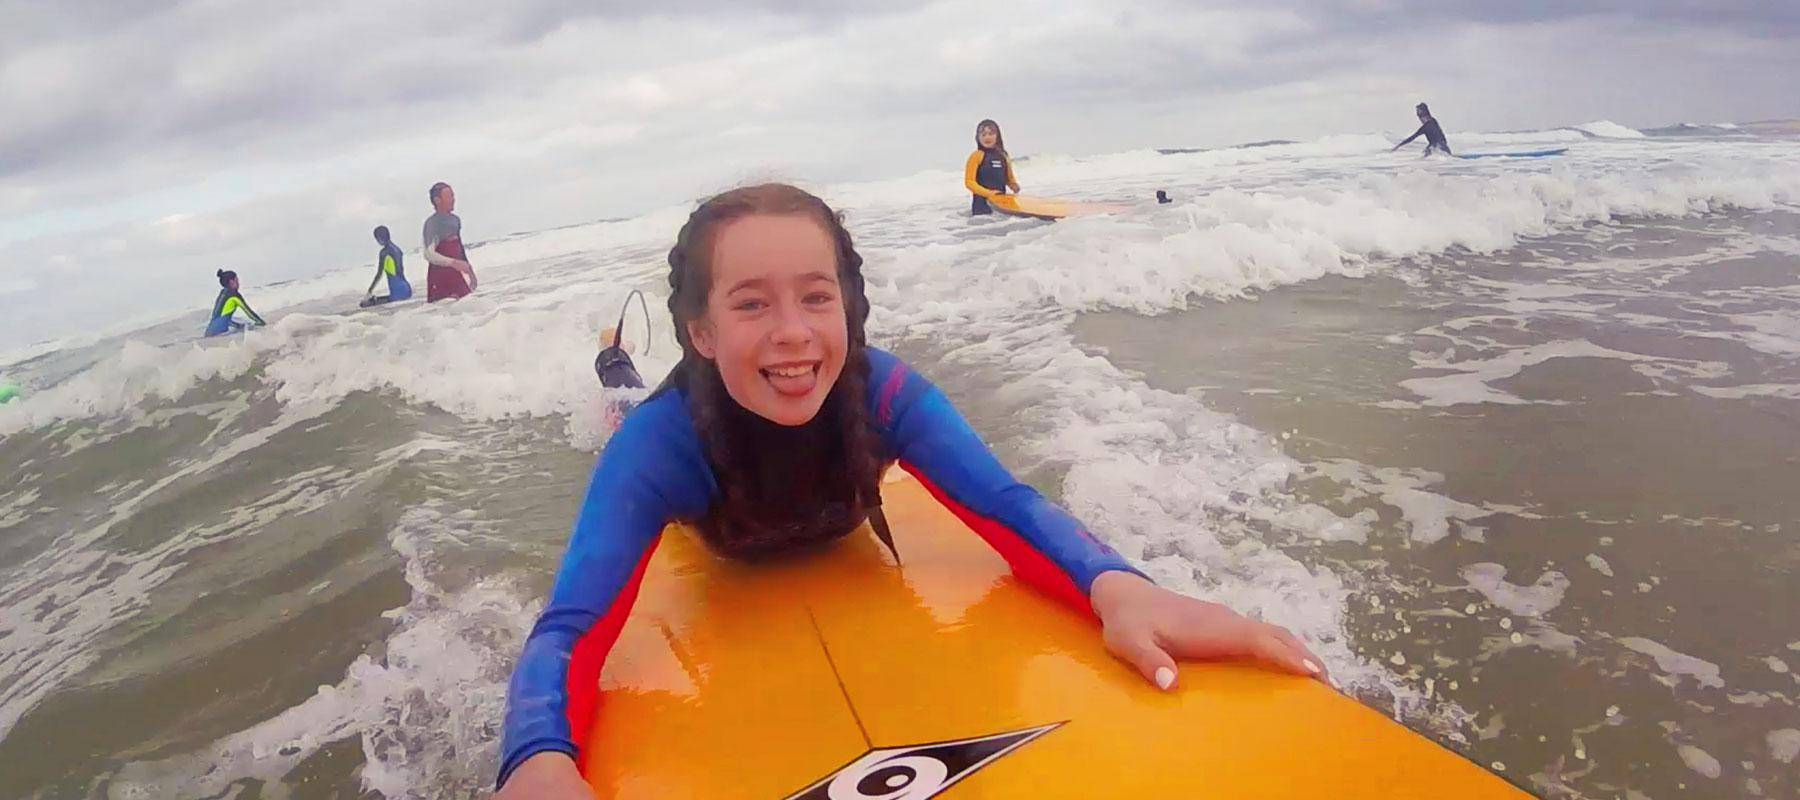 Blogger Jenography's daughter Lillian surfing in Moliets